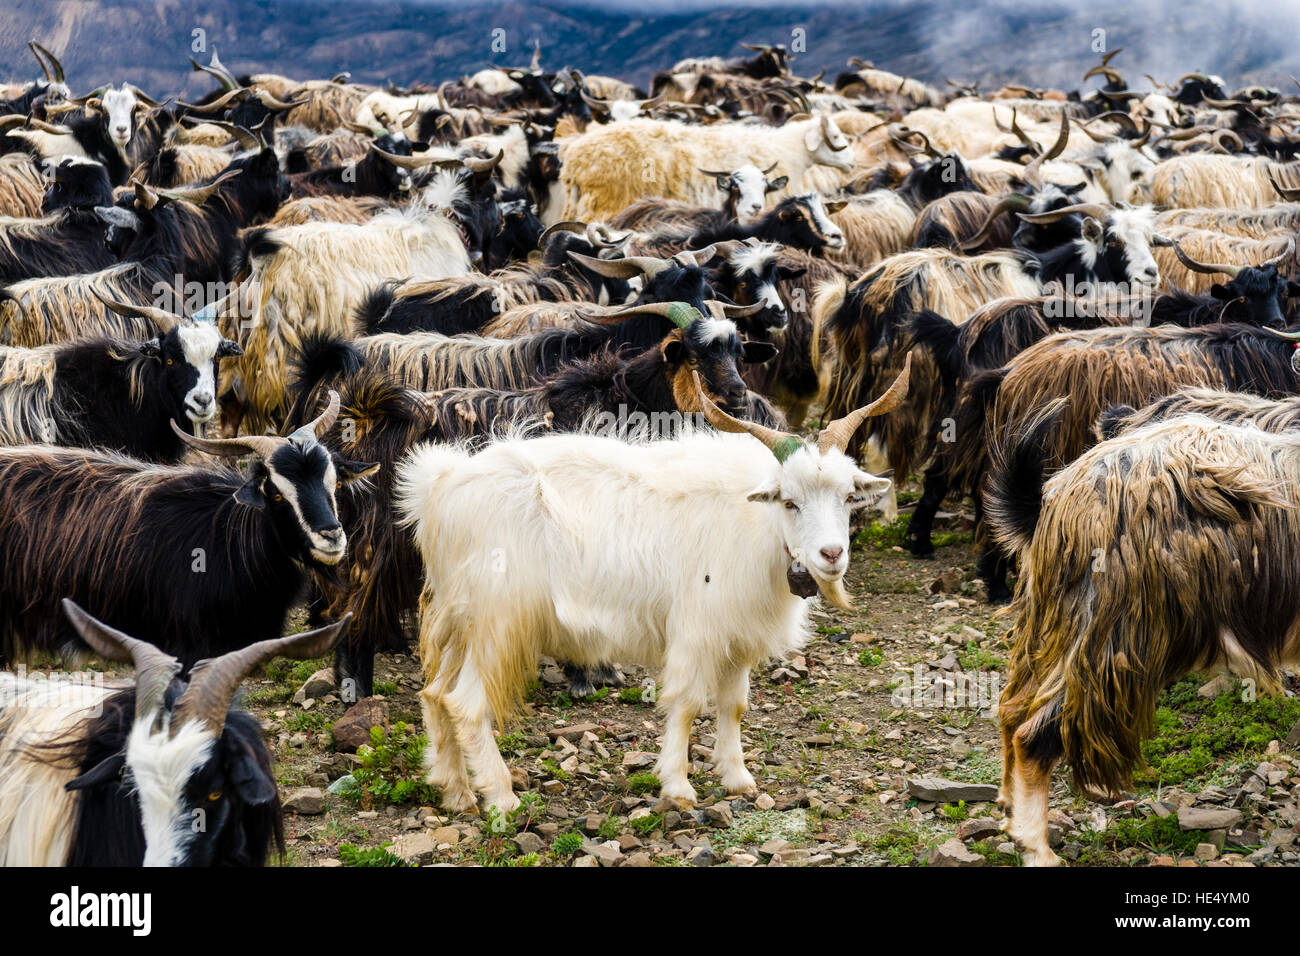 A herd of goats is moving on the search of food in the barren landscape of Upper Mustang - Stock Image